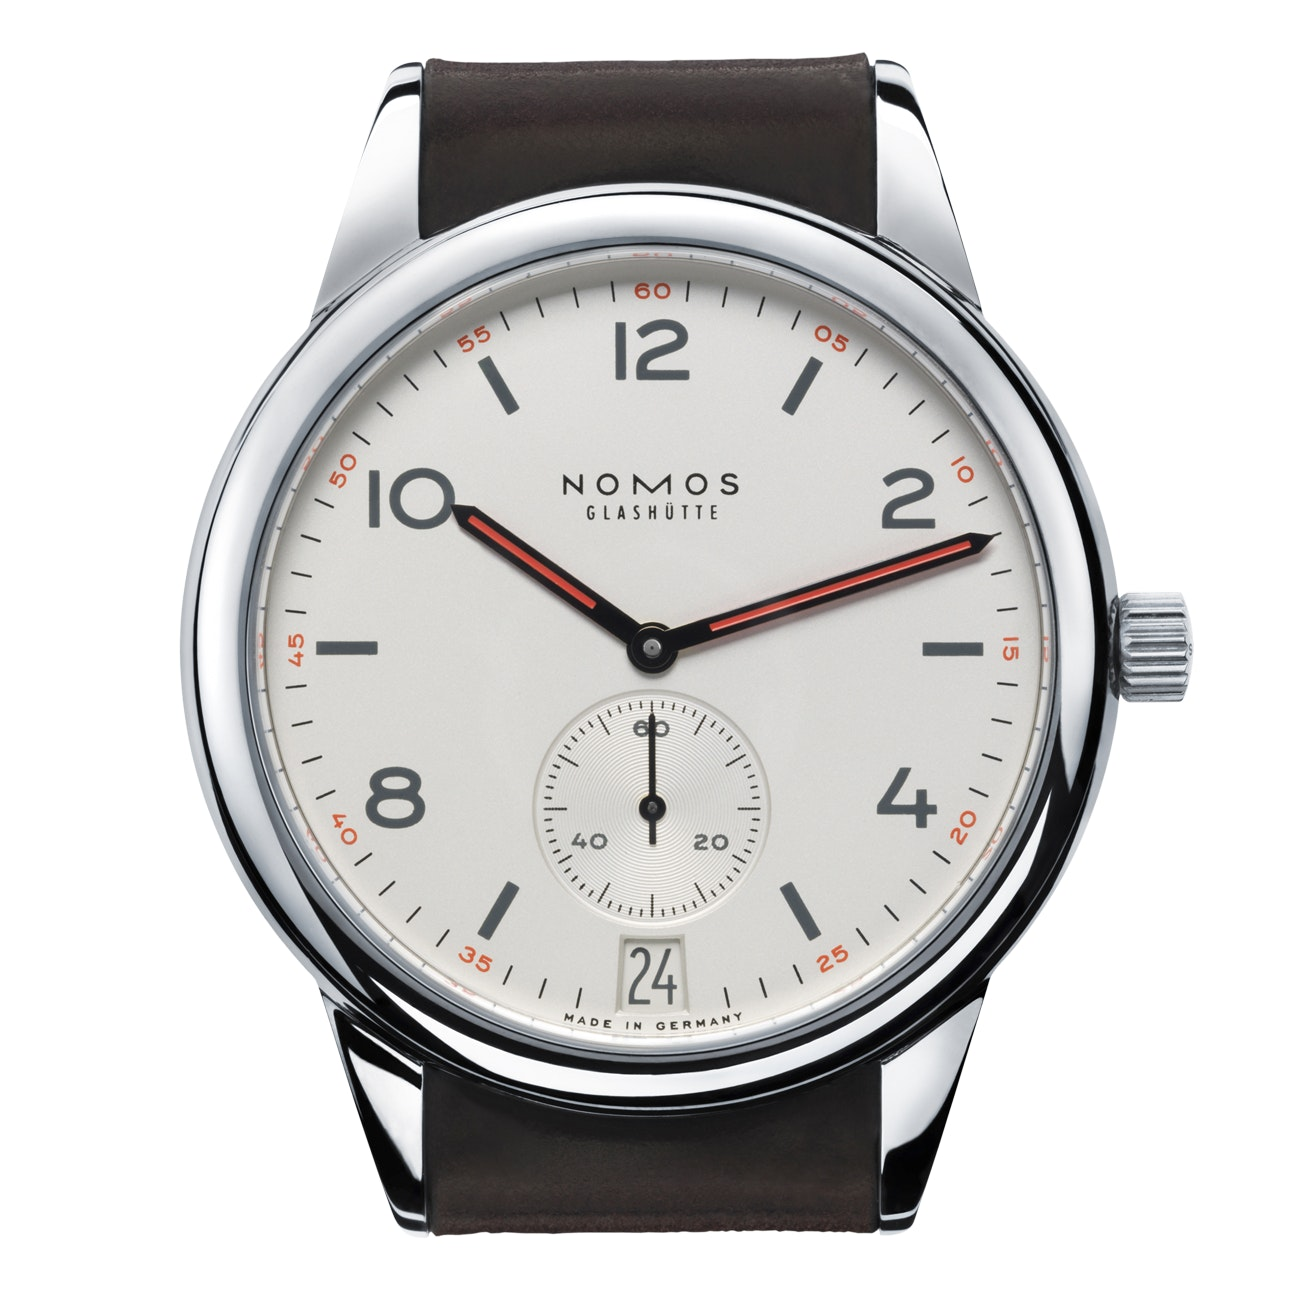 771 Club Automat Datum: Stainless, Automatic + Date window, 41.5mm